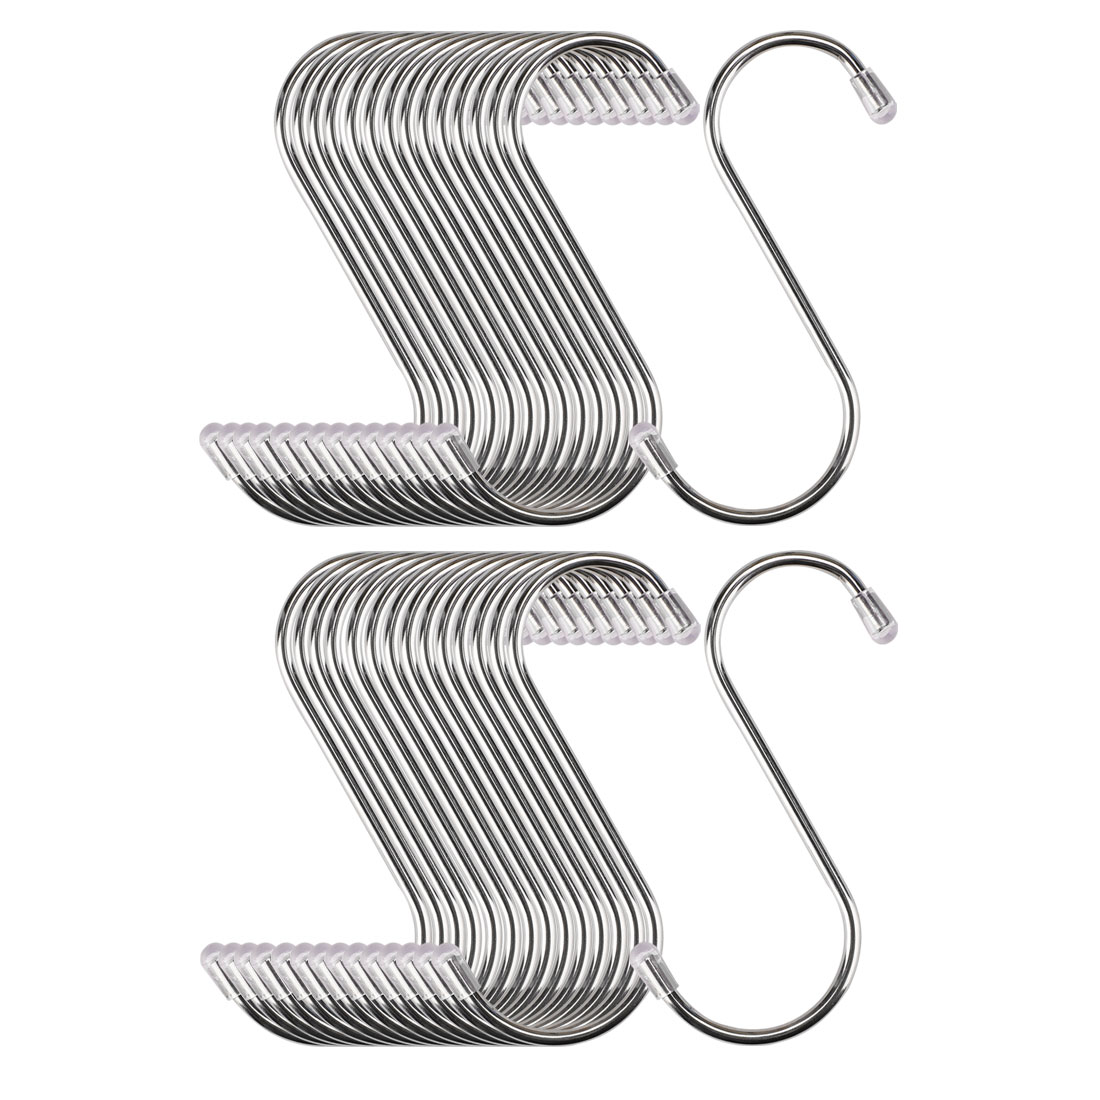 S Shape Hook Rack Stainless Steel for Kitchenware Clothes Utensil Holder 30 Pack